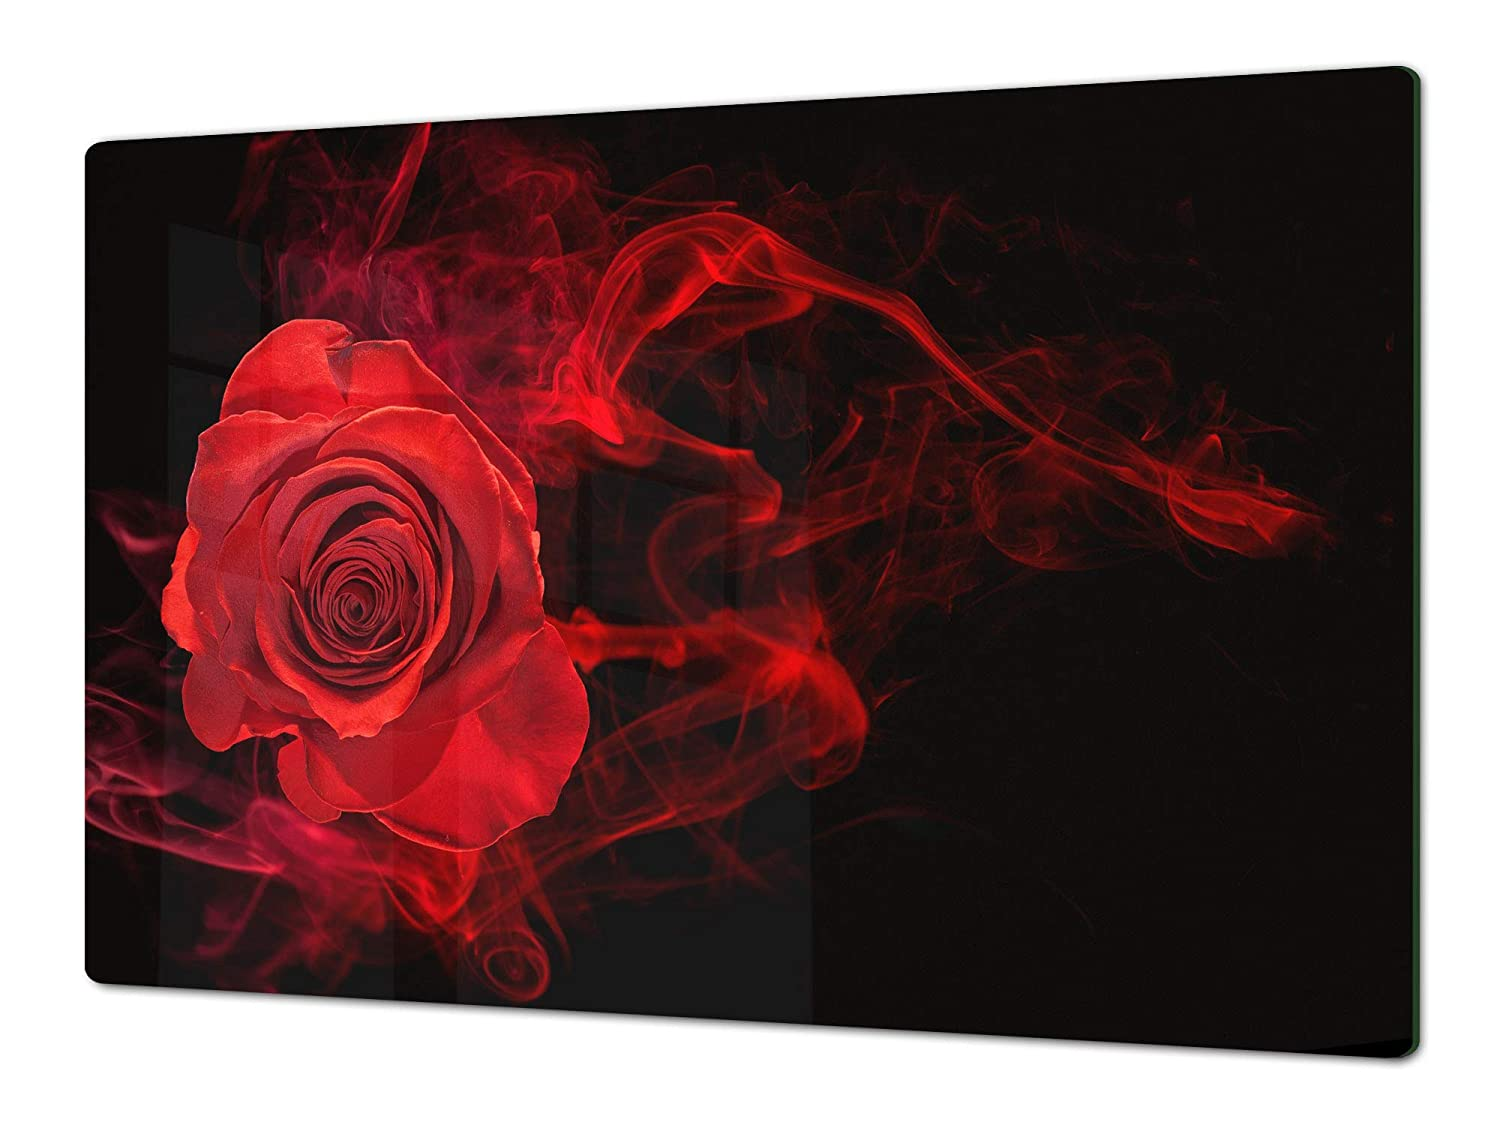 """; Flower series DD06B 15,75/"""" x 20,47/"""" Glass Cutting Board SINGLE: 80 x 52 cm 31,5/"""" x 20,47/"""" ; DOUBLE: 40 x 52 cm Induction Cooktop Cover ENORMOUS Tempered GLASS Chopping Board"""